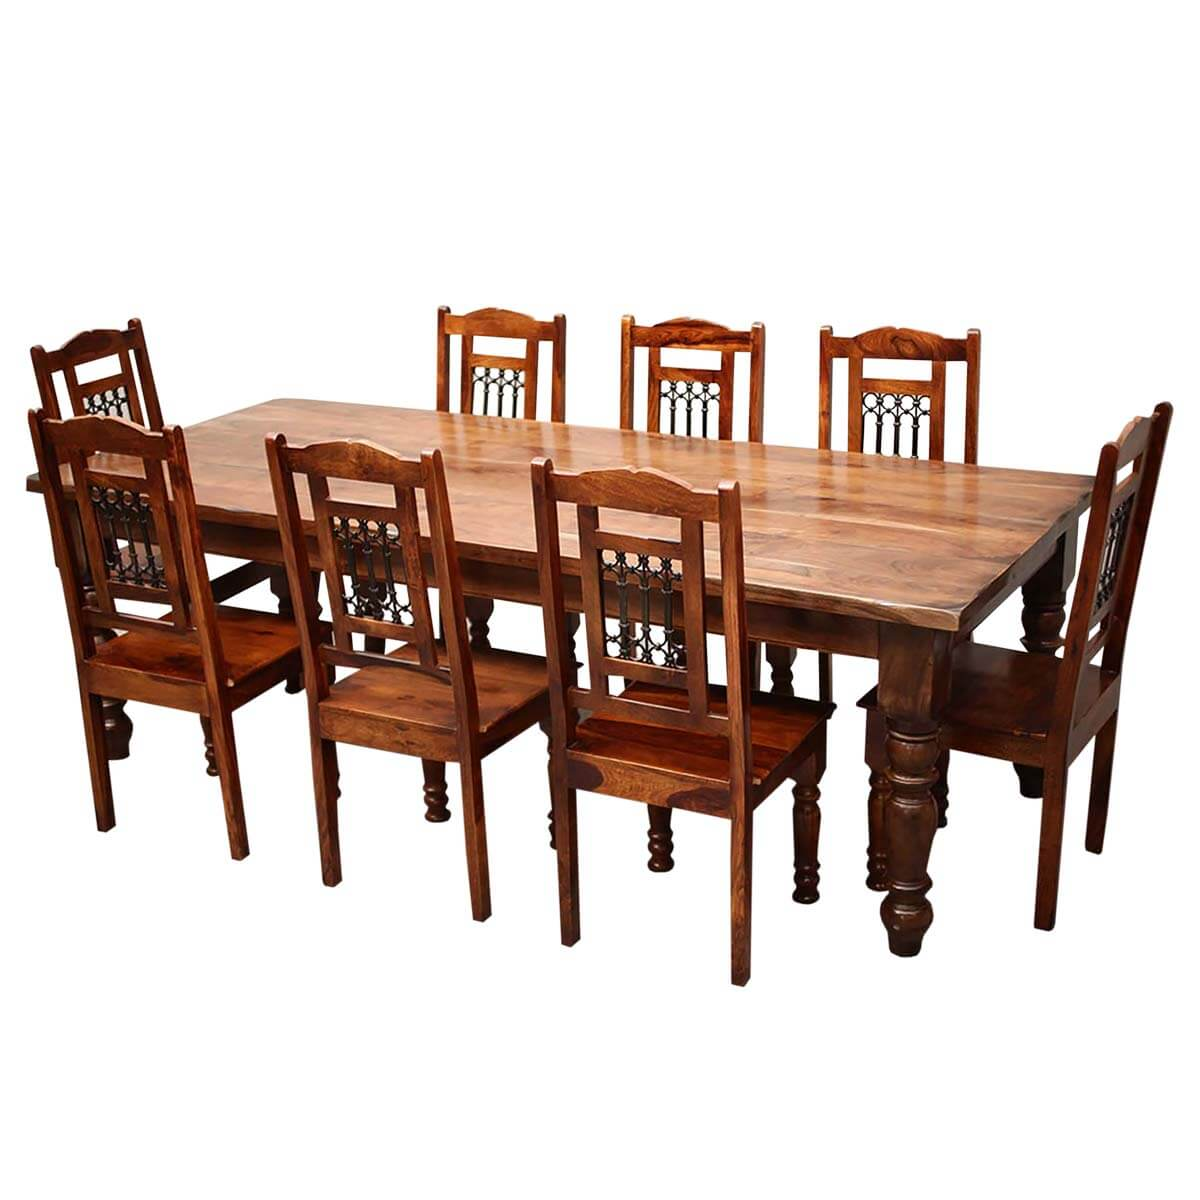 Rustic furniture solid wood large dining table 8 chair set for Large dining chairs